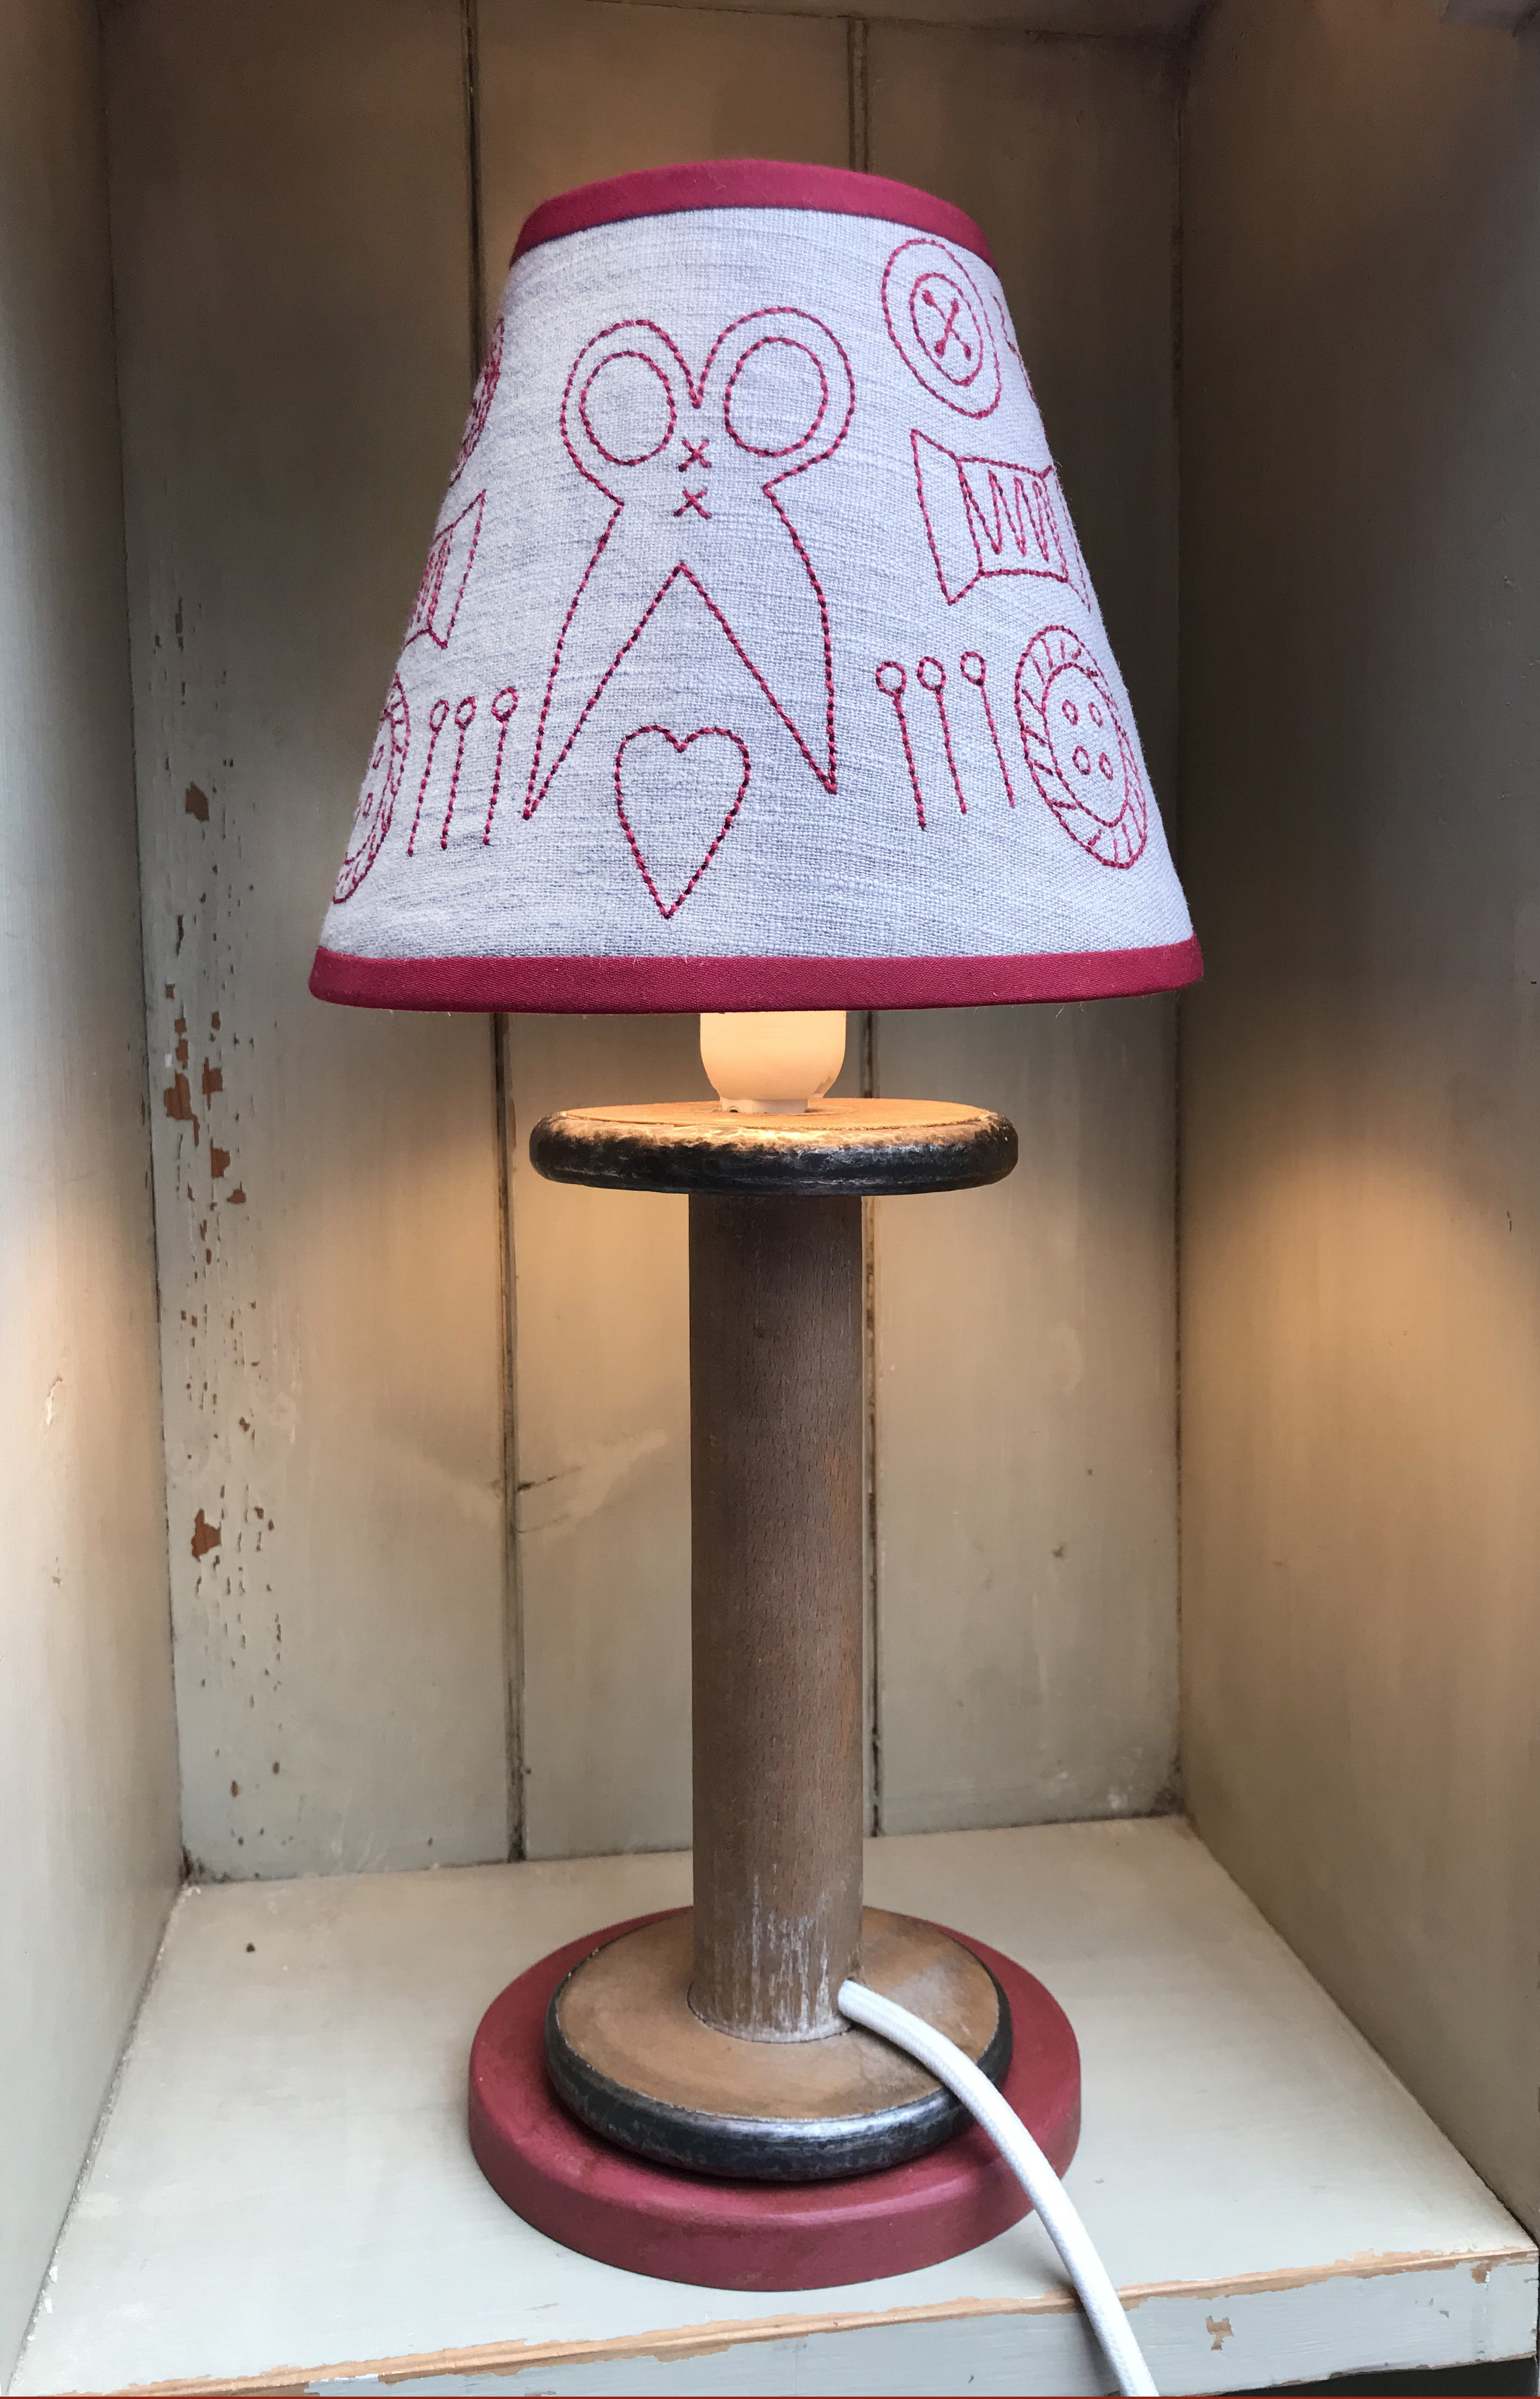 The lamps were inspired by Antique Spools, seen below before being carefully transformed into lamps.